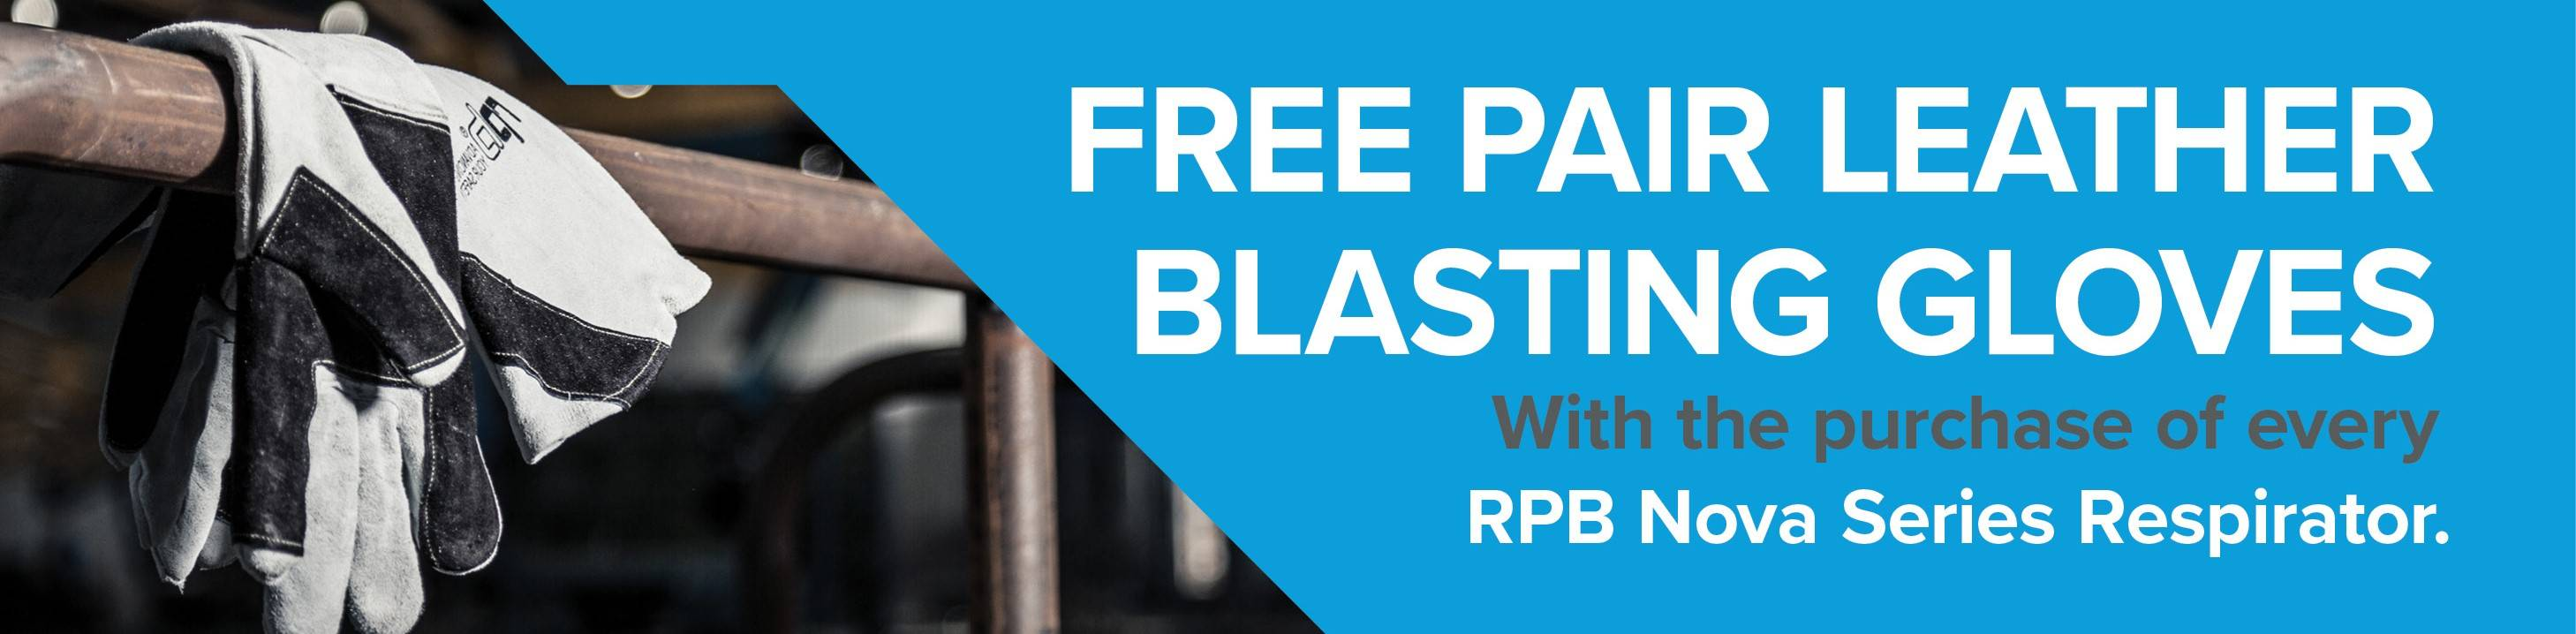 Free pair of leather blaster gloves with purchase of Nova series blasting respirator helmets